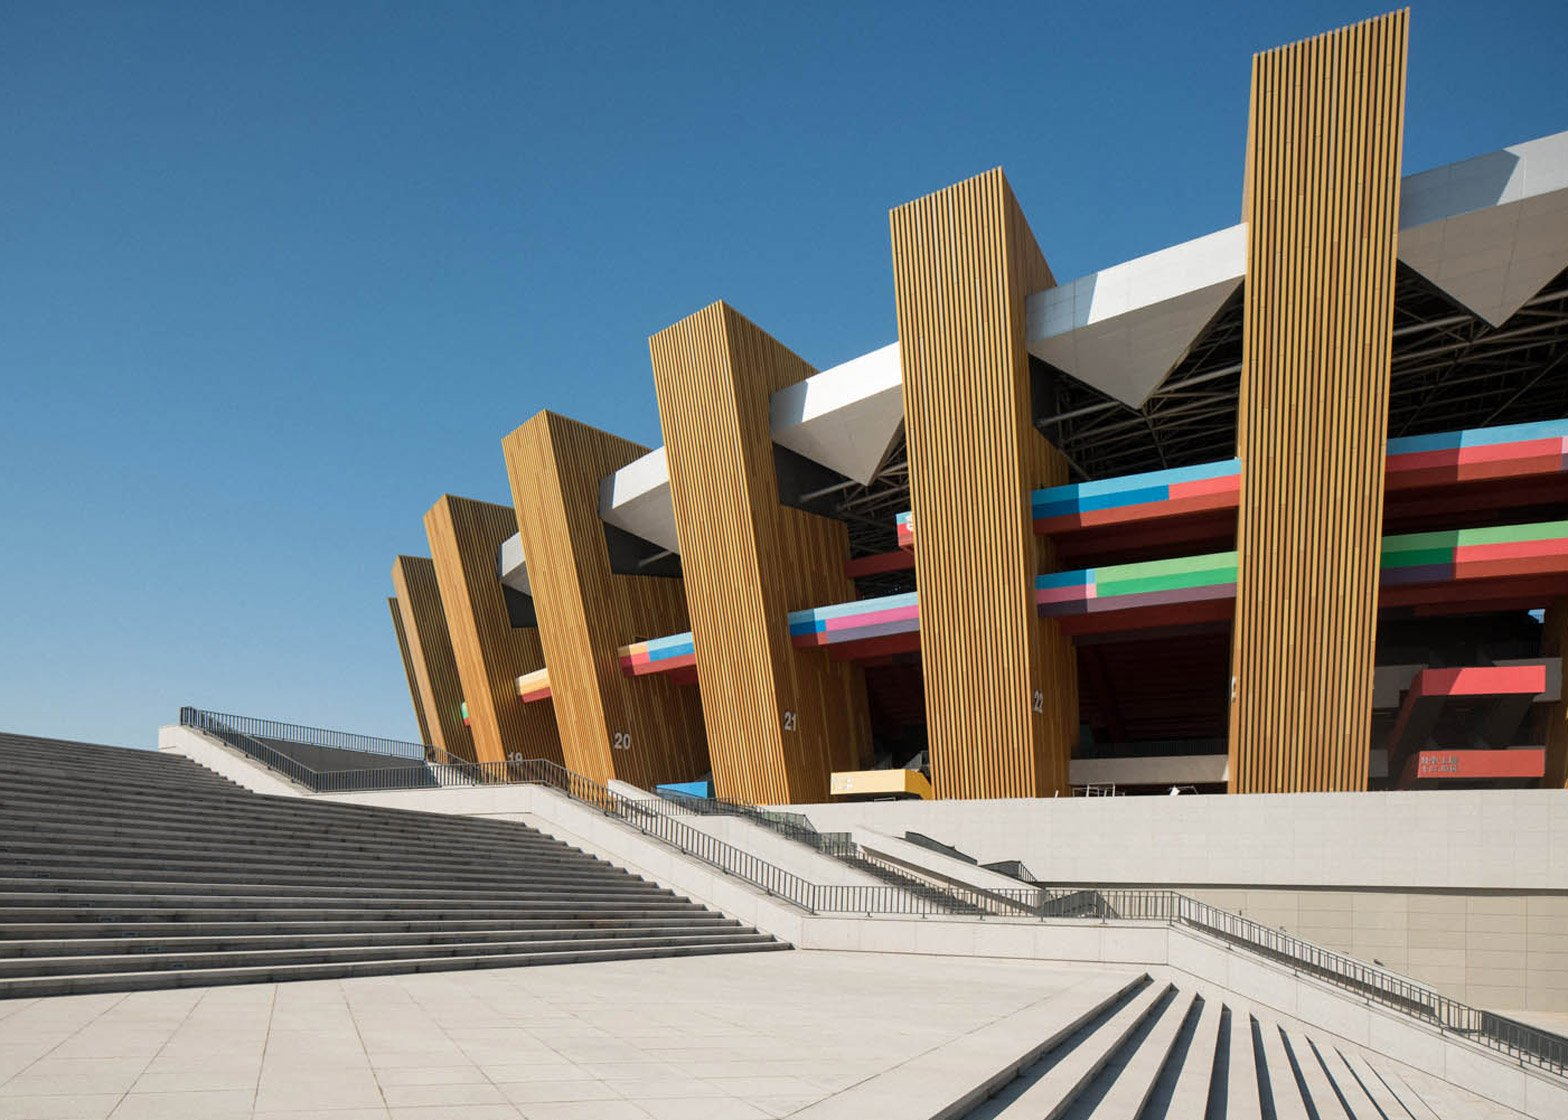 Ordos Sports Center Stadium by China Architecture Design and Research Group